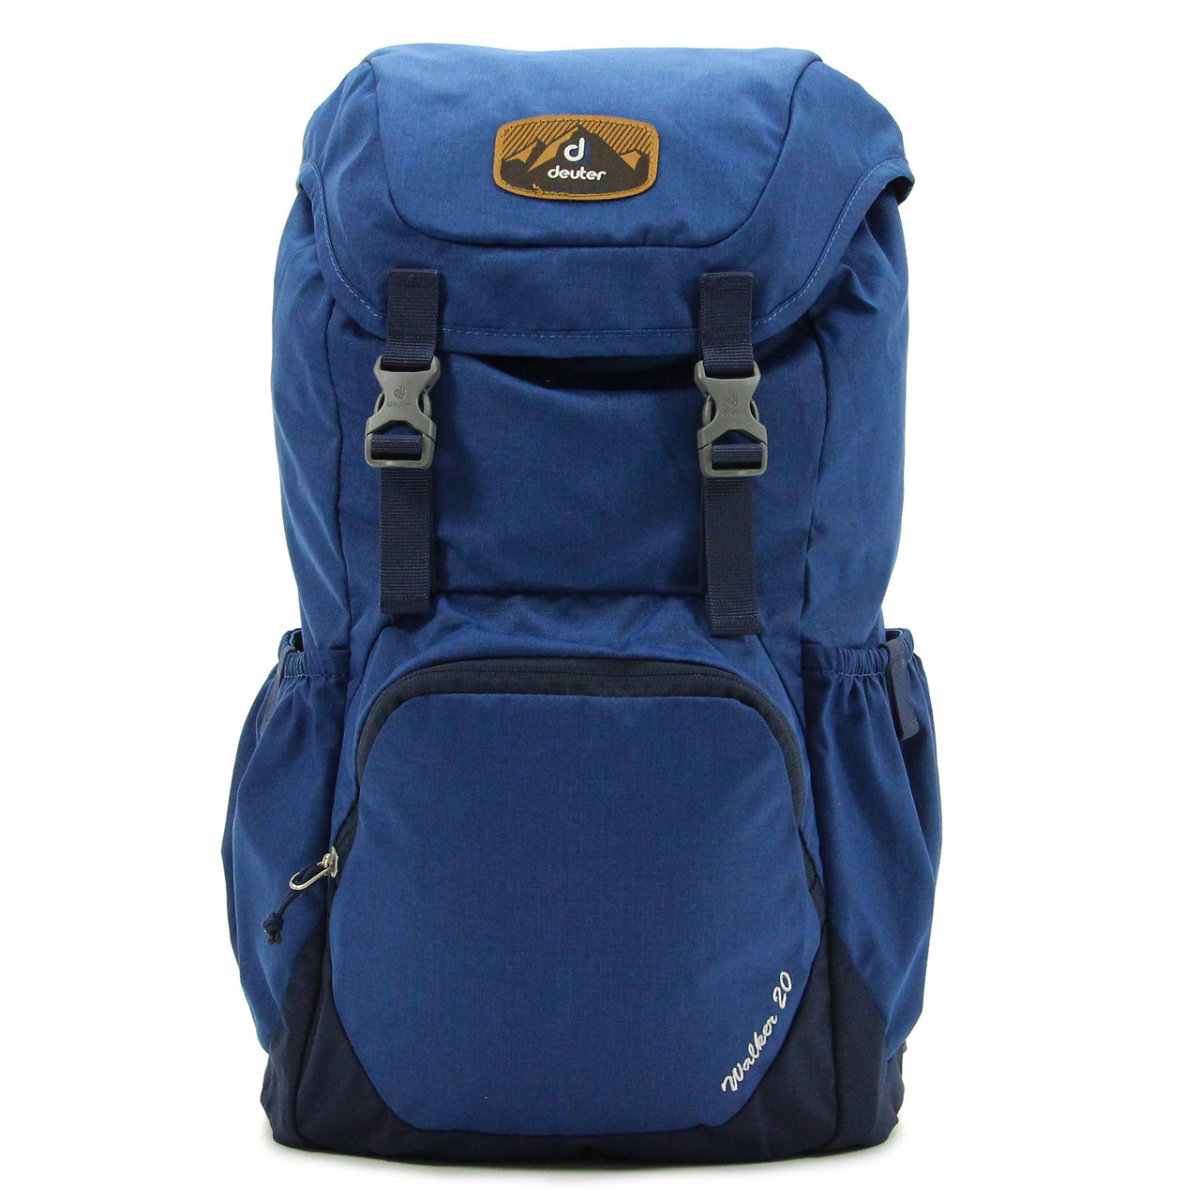 Рюкзак Deuter Walker 20 petrol-arctic (3325) Walker 20 3 3810617 3325